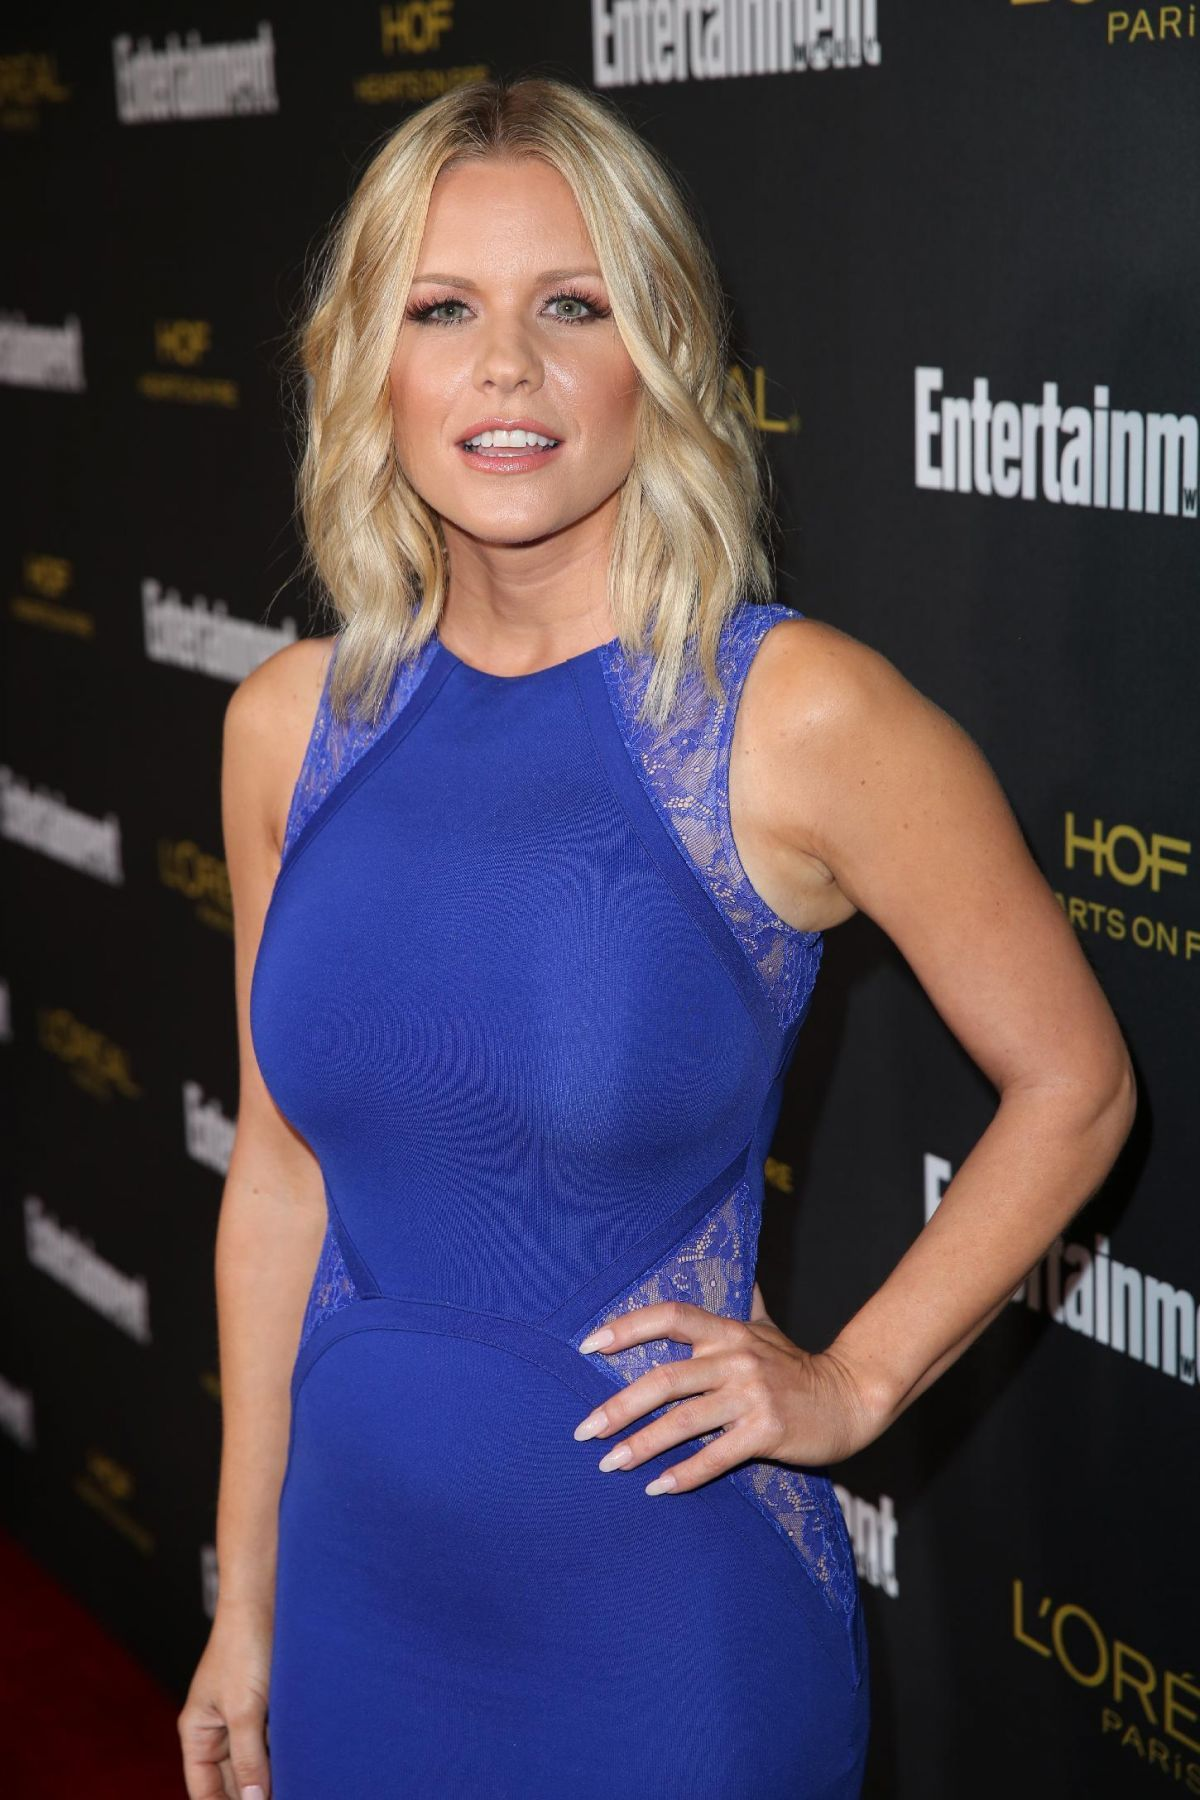 carrie keagan bookcarrie keagan insta, carrie keagan book, carrie keagan height, carrie keagan net worth, carrie keagan, carrie keagan instagram, carrie keagan wiki, carrie keagan 2015, carrie keagan craig ferguson, carrie keagan measurements, carrie keagan husband, carrie keagan married, carrie keagan gif, carrie keagan reddit, carrie keagan boyfriend, carrie keagan breasts, carrie keagan tumblr